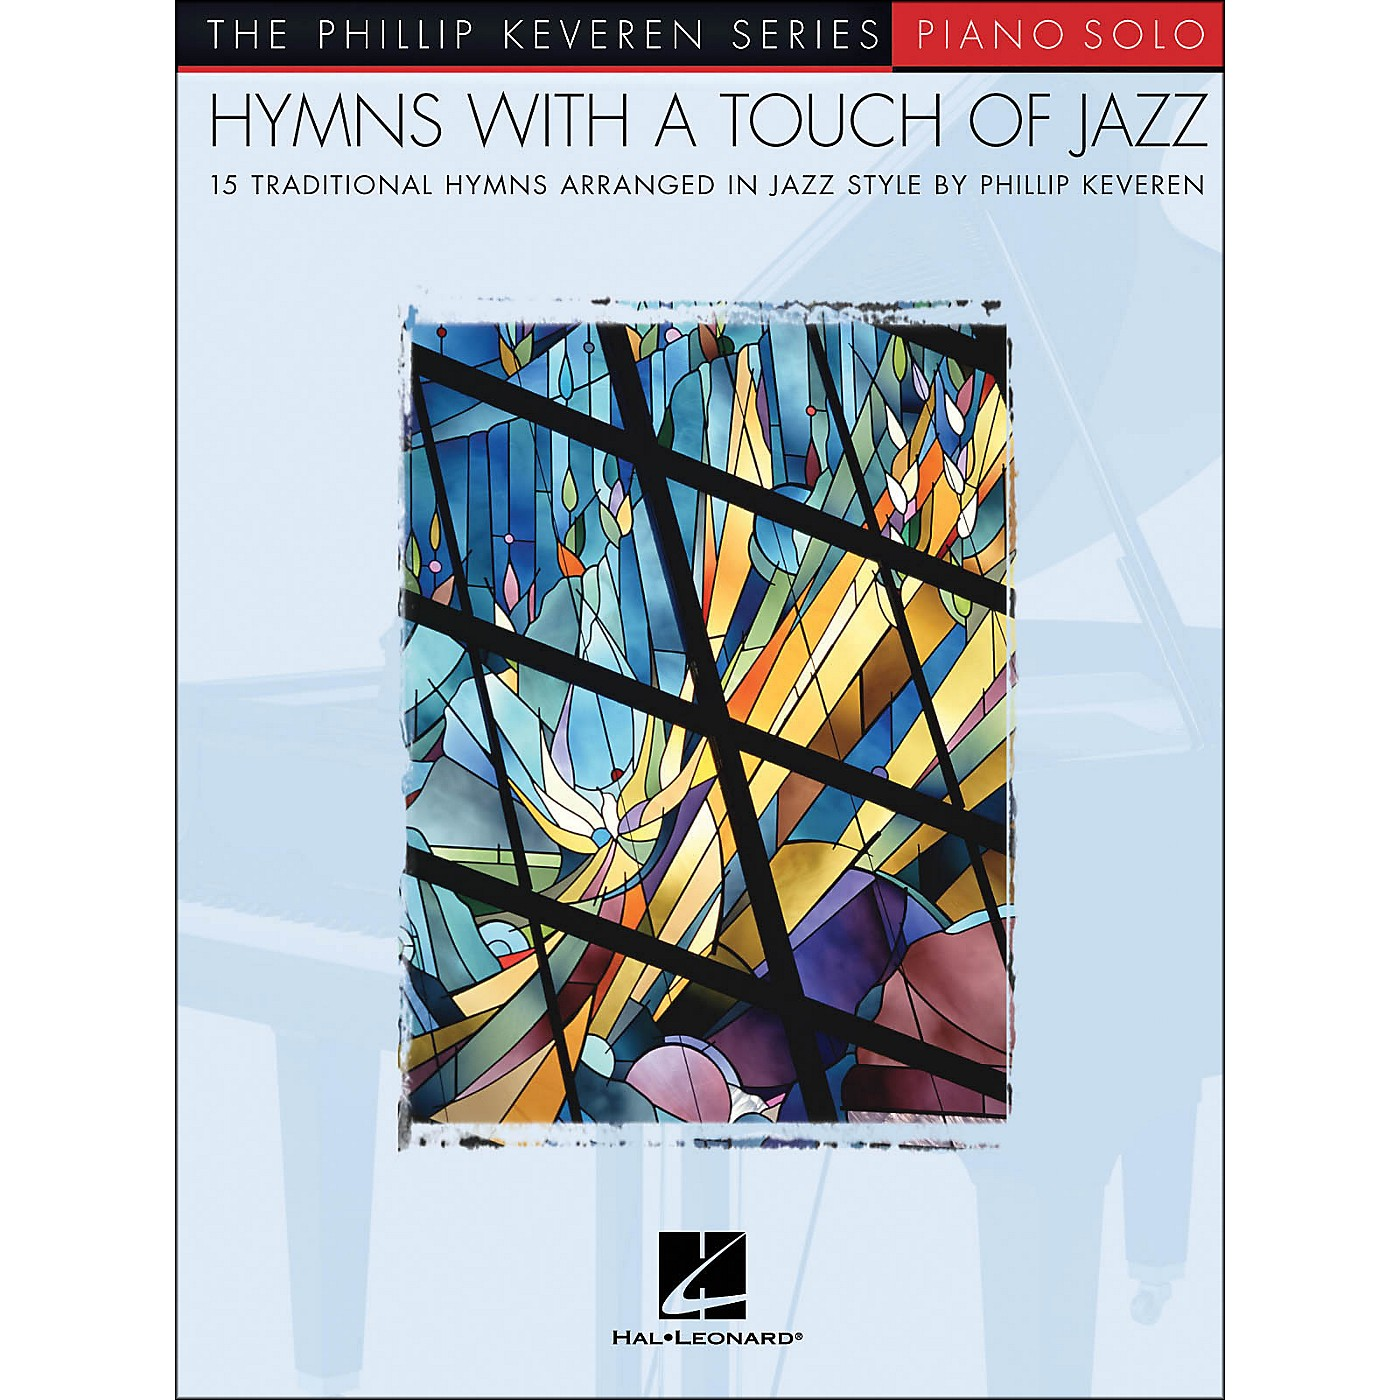 Hal Leonard Hymns with A Touch Of Jazz - Piano Solo - Phillip Keveren Series thumbnail